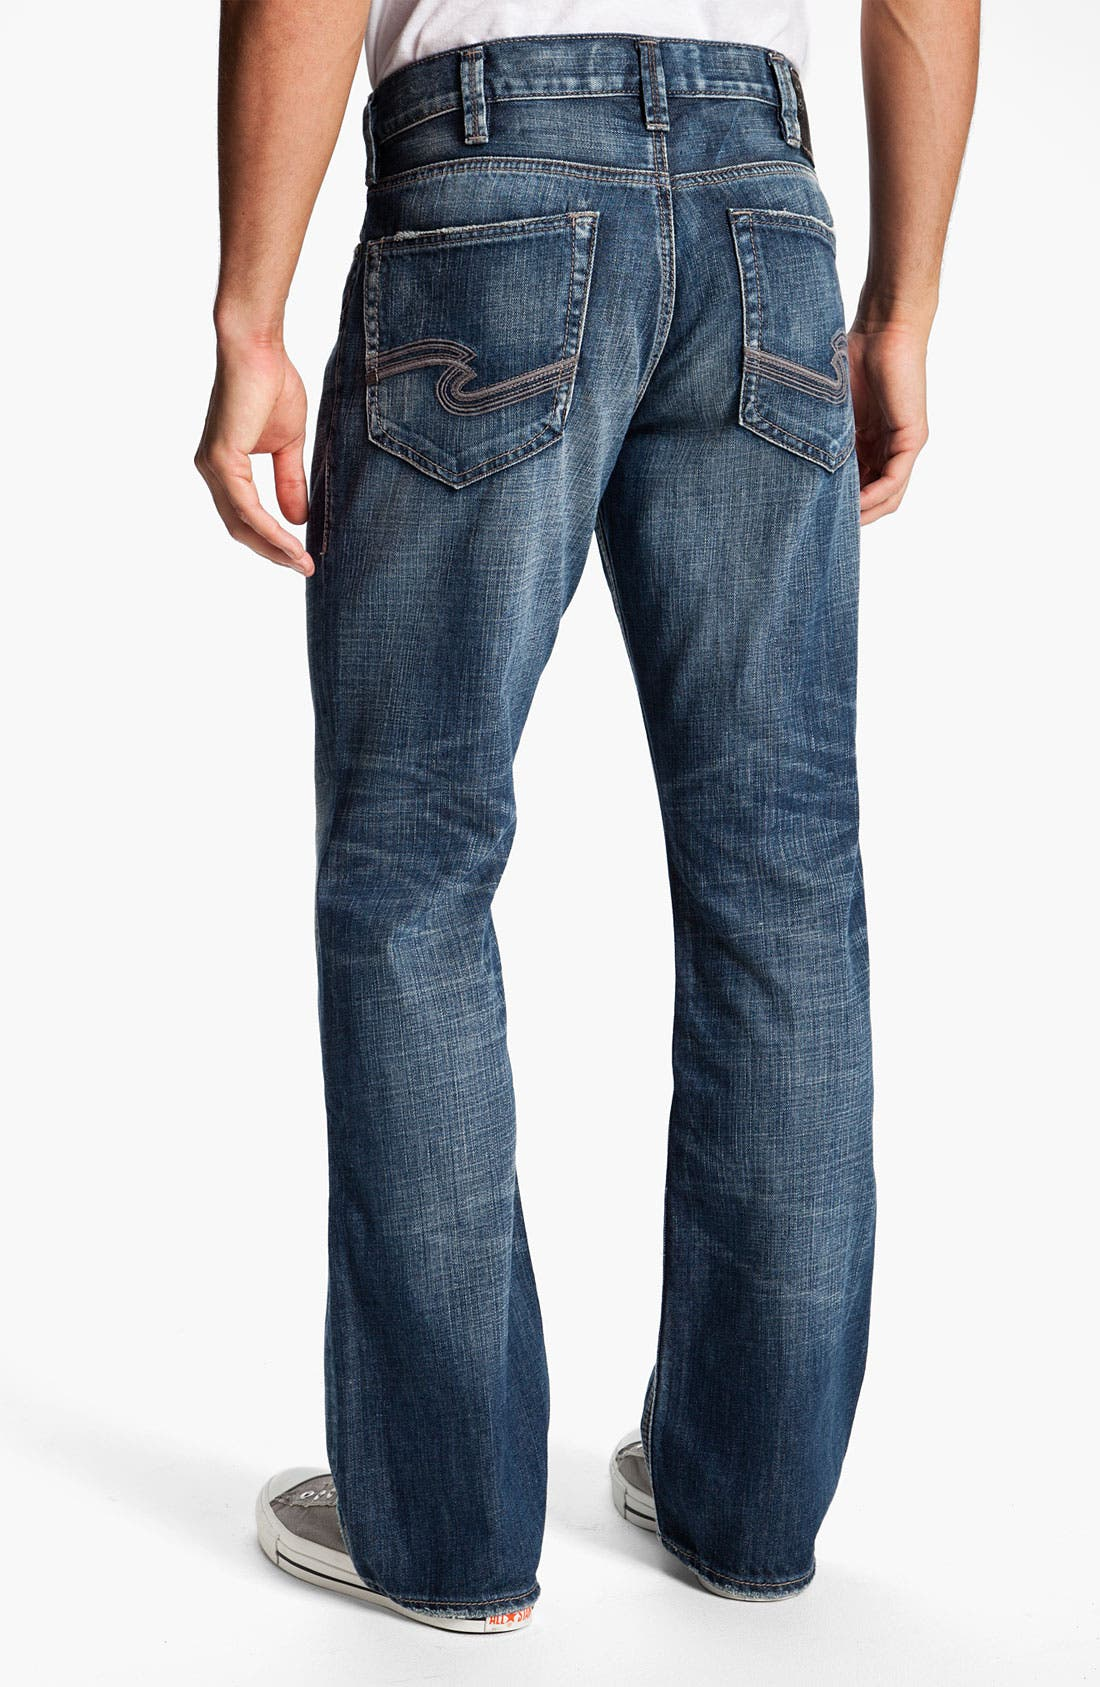 Alternate Image 1 Selected - Silver Jeans Co. 'Grayson' Relaxed Bootcut Jeans (Indigo)